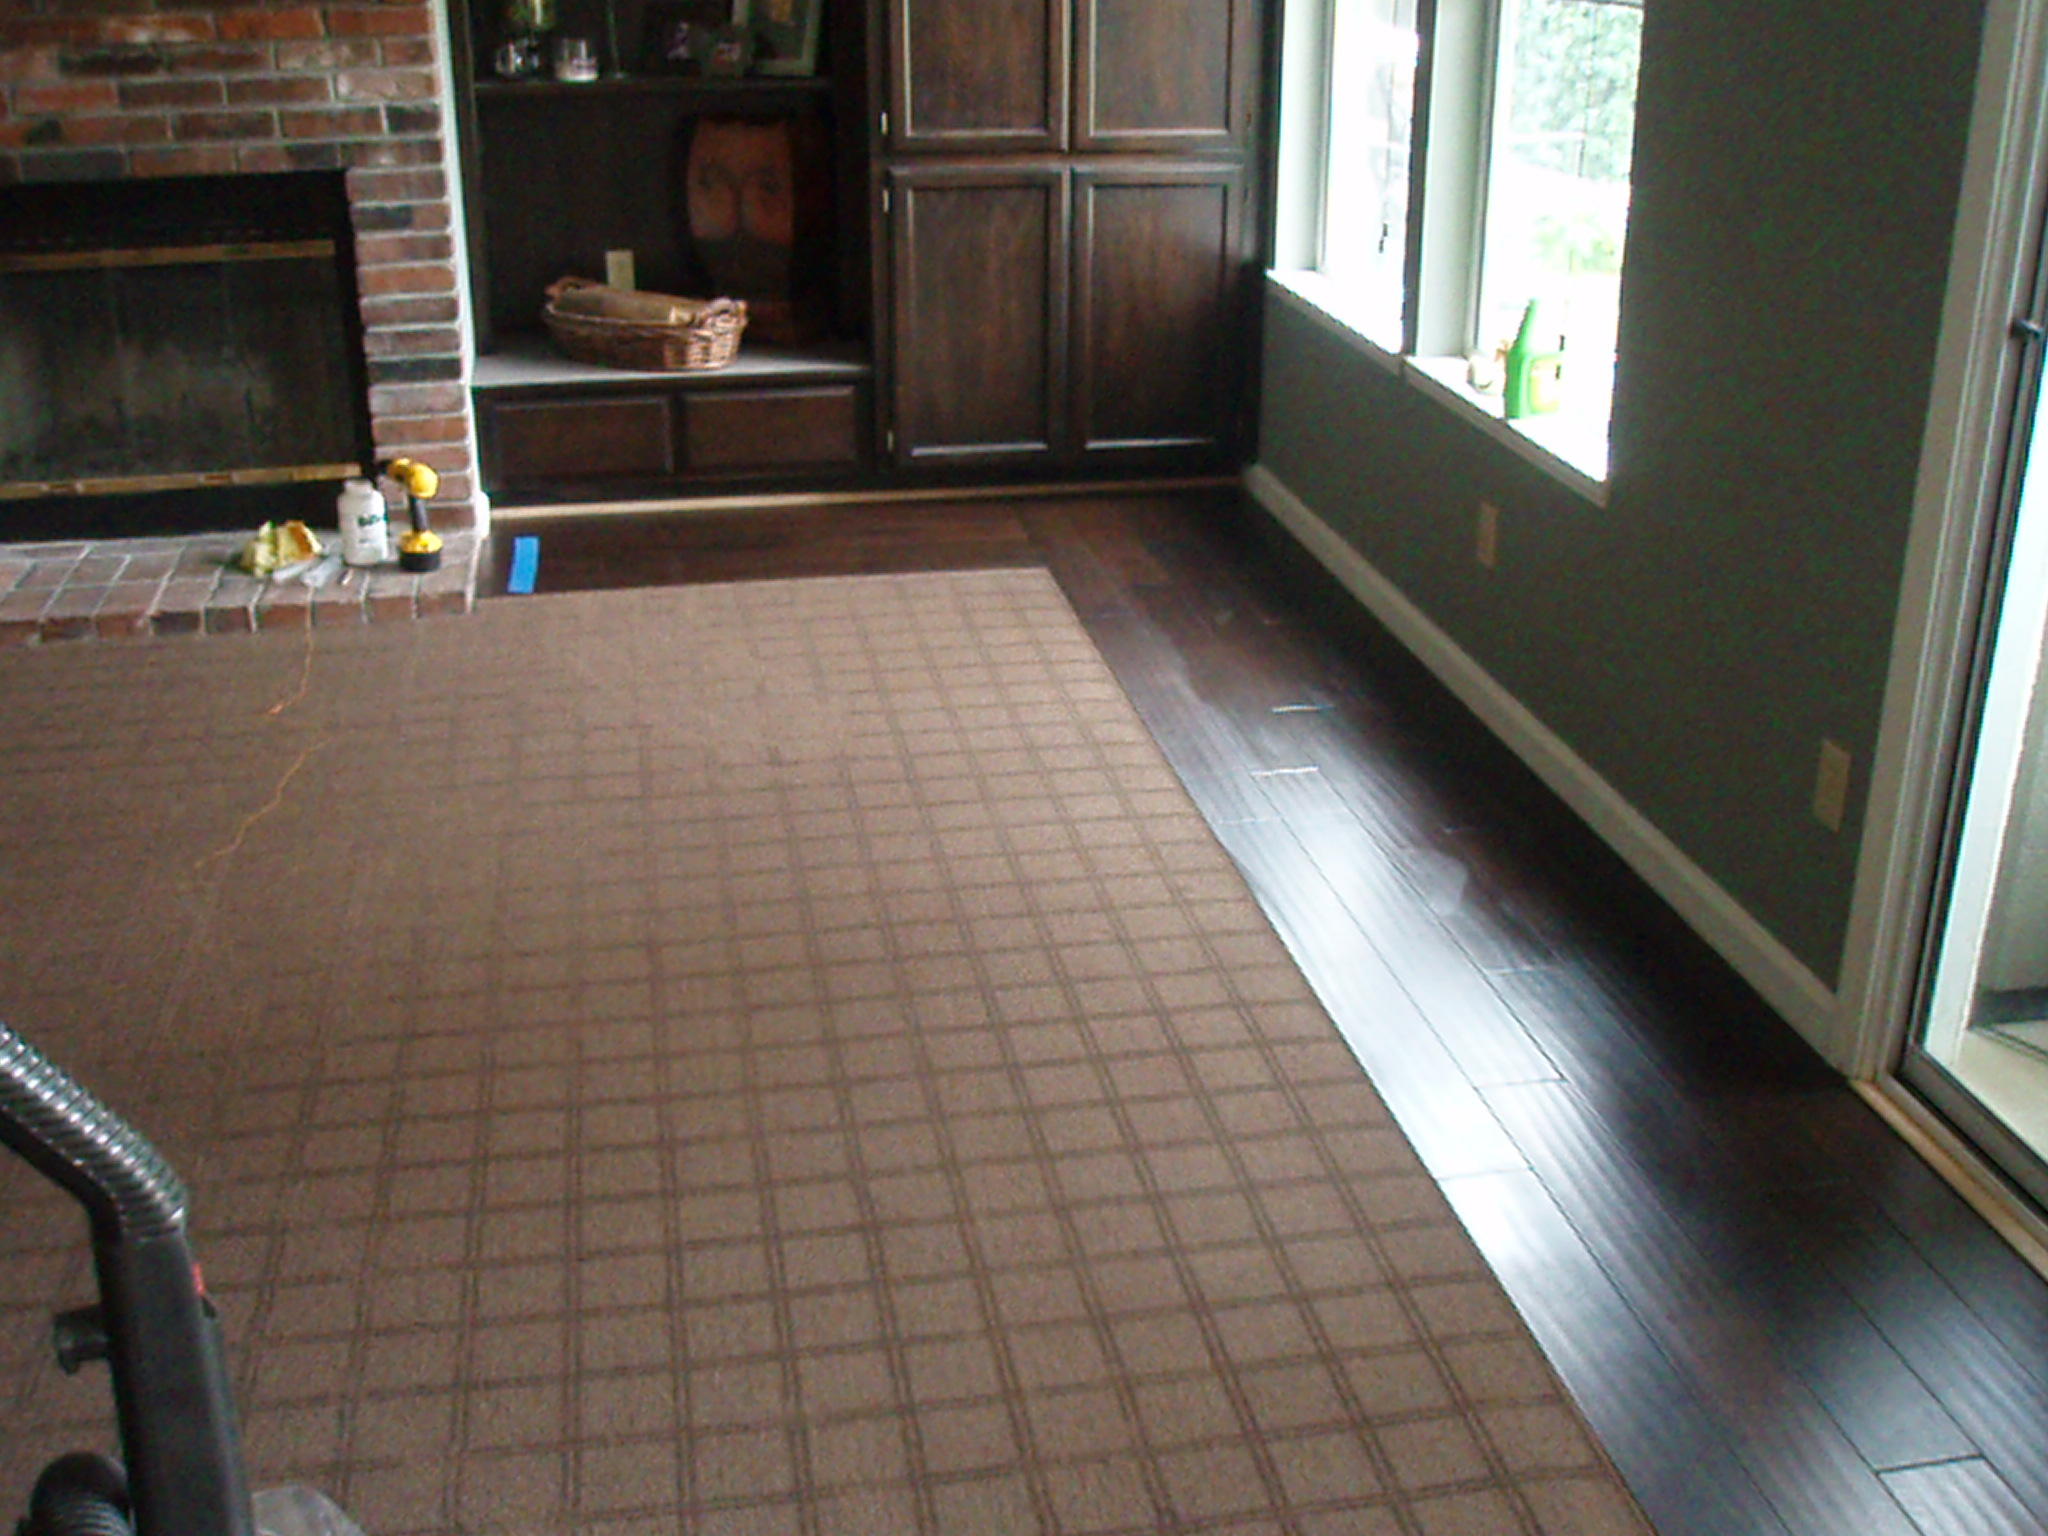 Vince parker flooring rancho cordova ca 95670 angies list for Hardwood floors or carpet